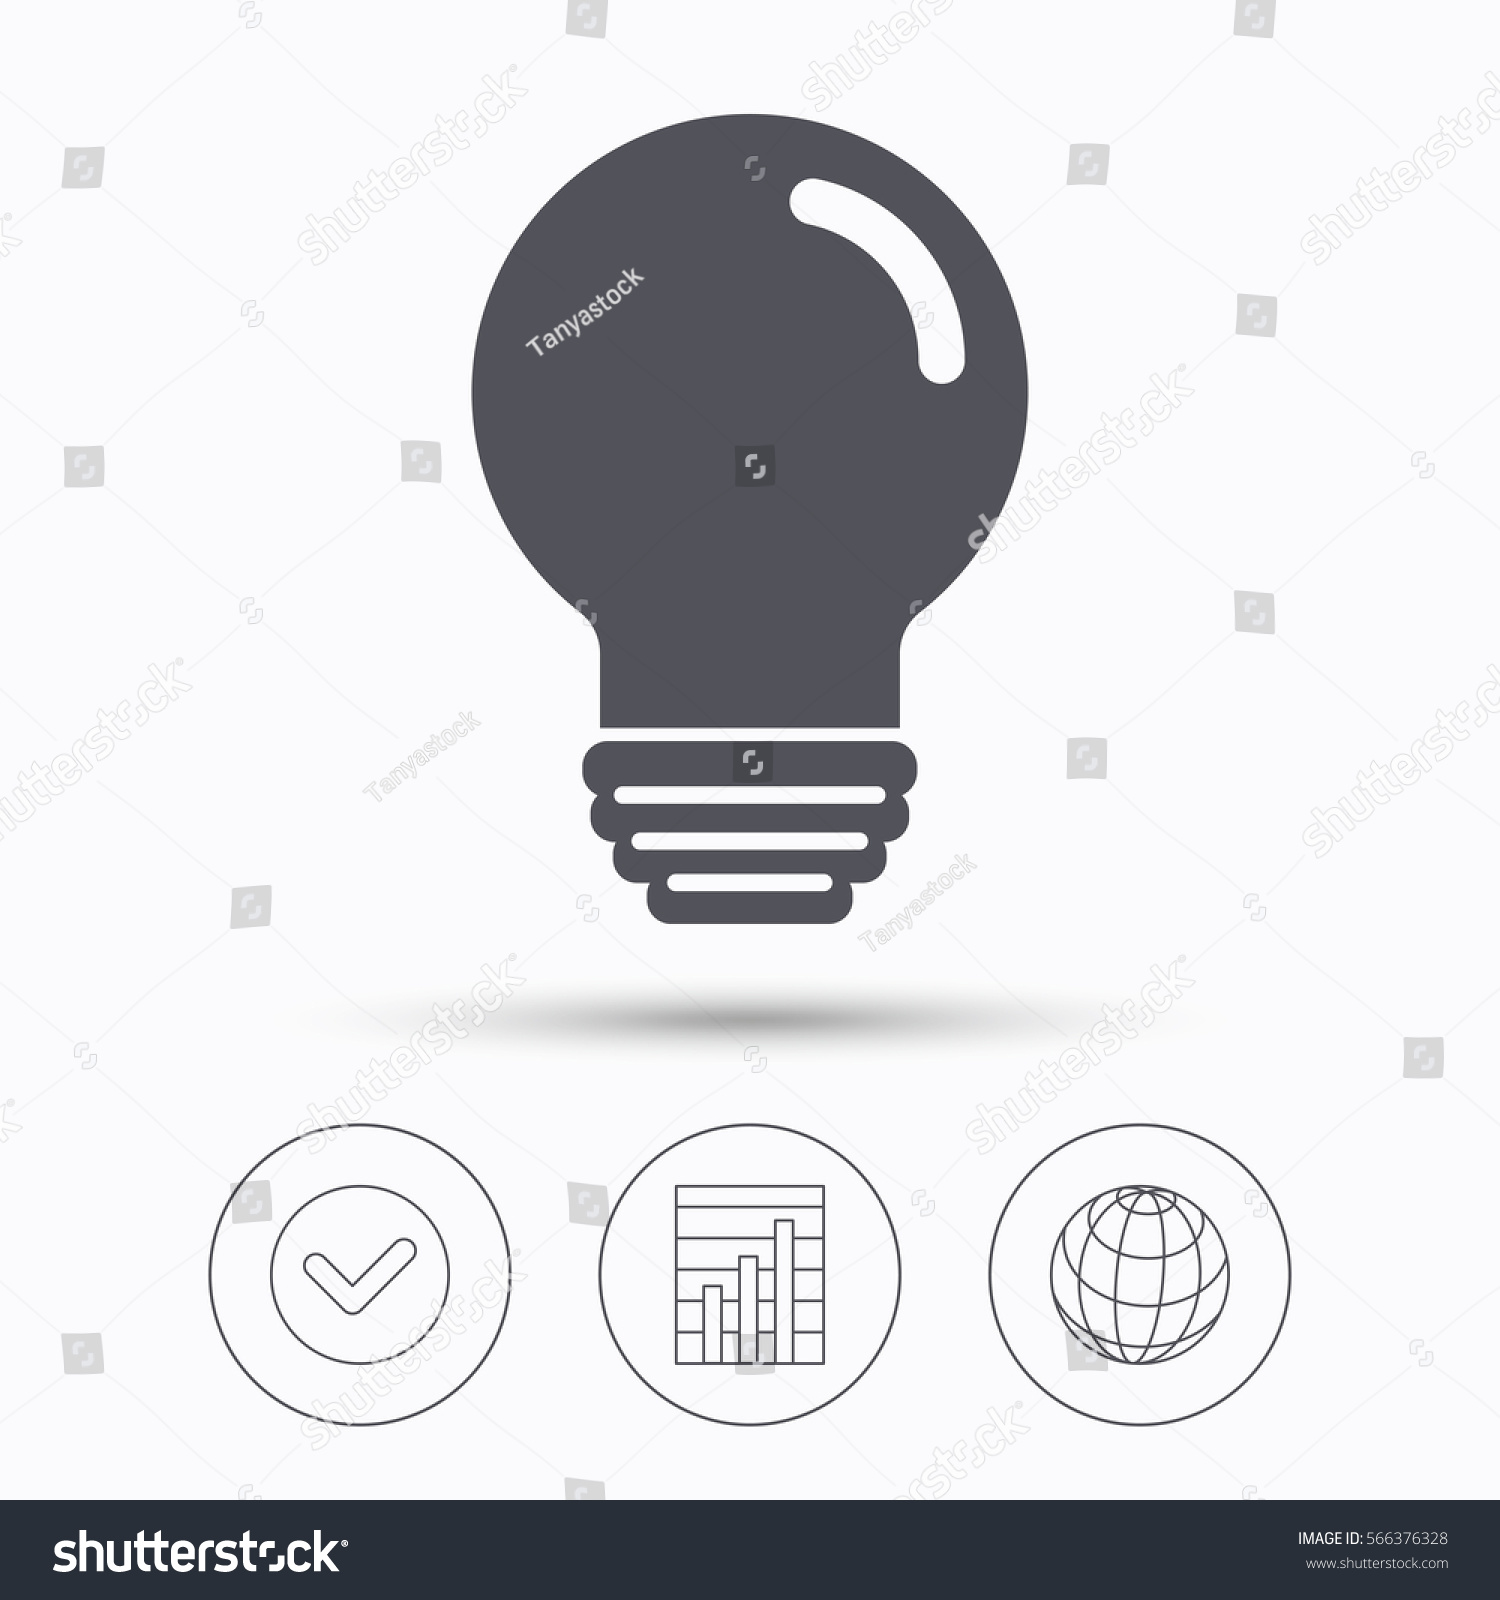 Royalty Free Stock Illustration Of Light Bulb Icon Lamp Sign Incandescent Diagram Group Picture Image By Tag Illumination Technology Symbol Check Tick Graph Chart